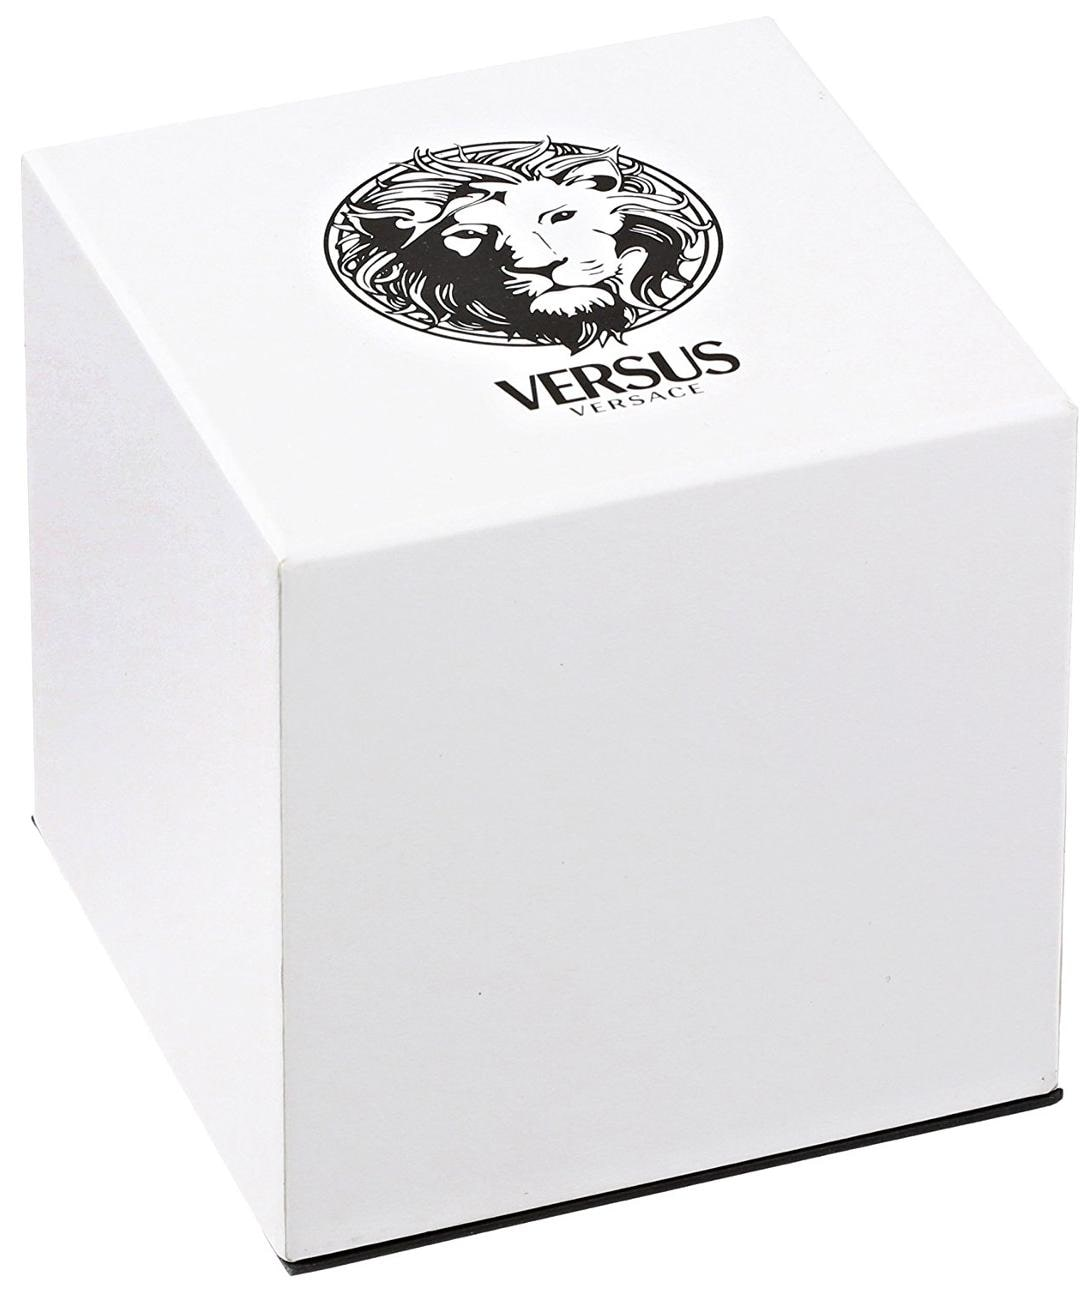 1ea26a4299ad Buy Versus Versace S70010016 Analog Men Watch and 1 Versus Versace Pen Free  Online at Low Prices in India - Paytmmall.com